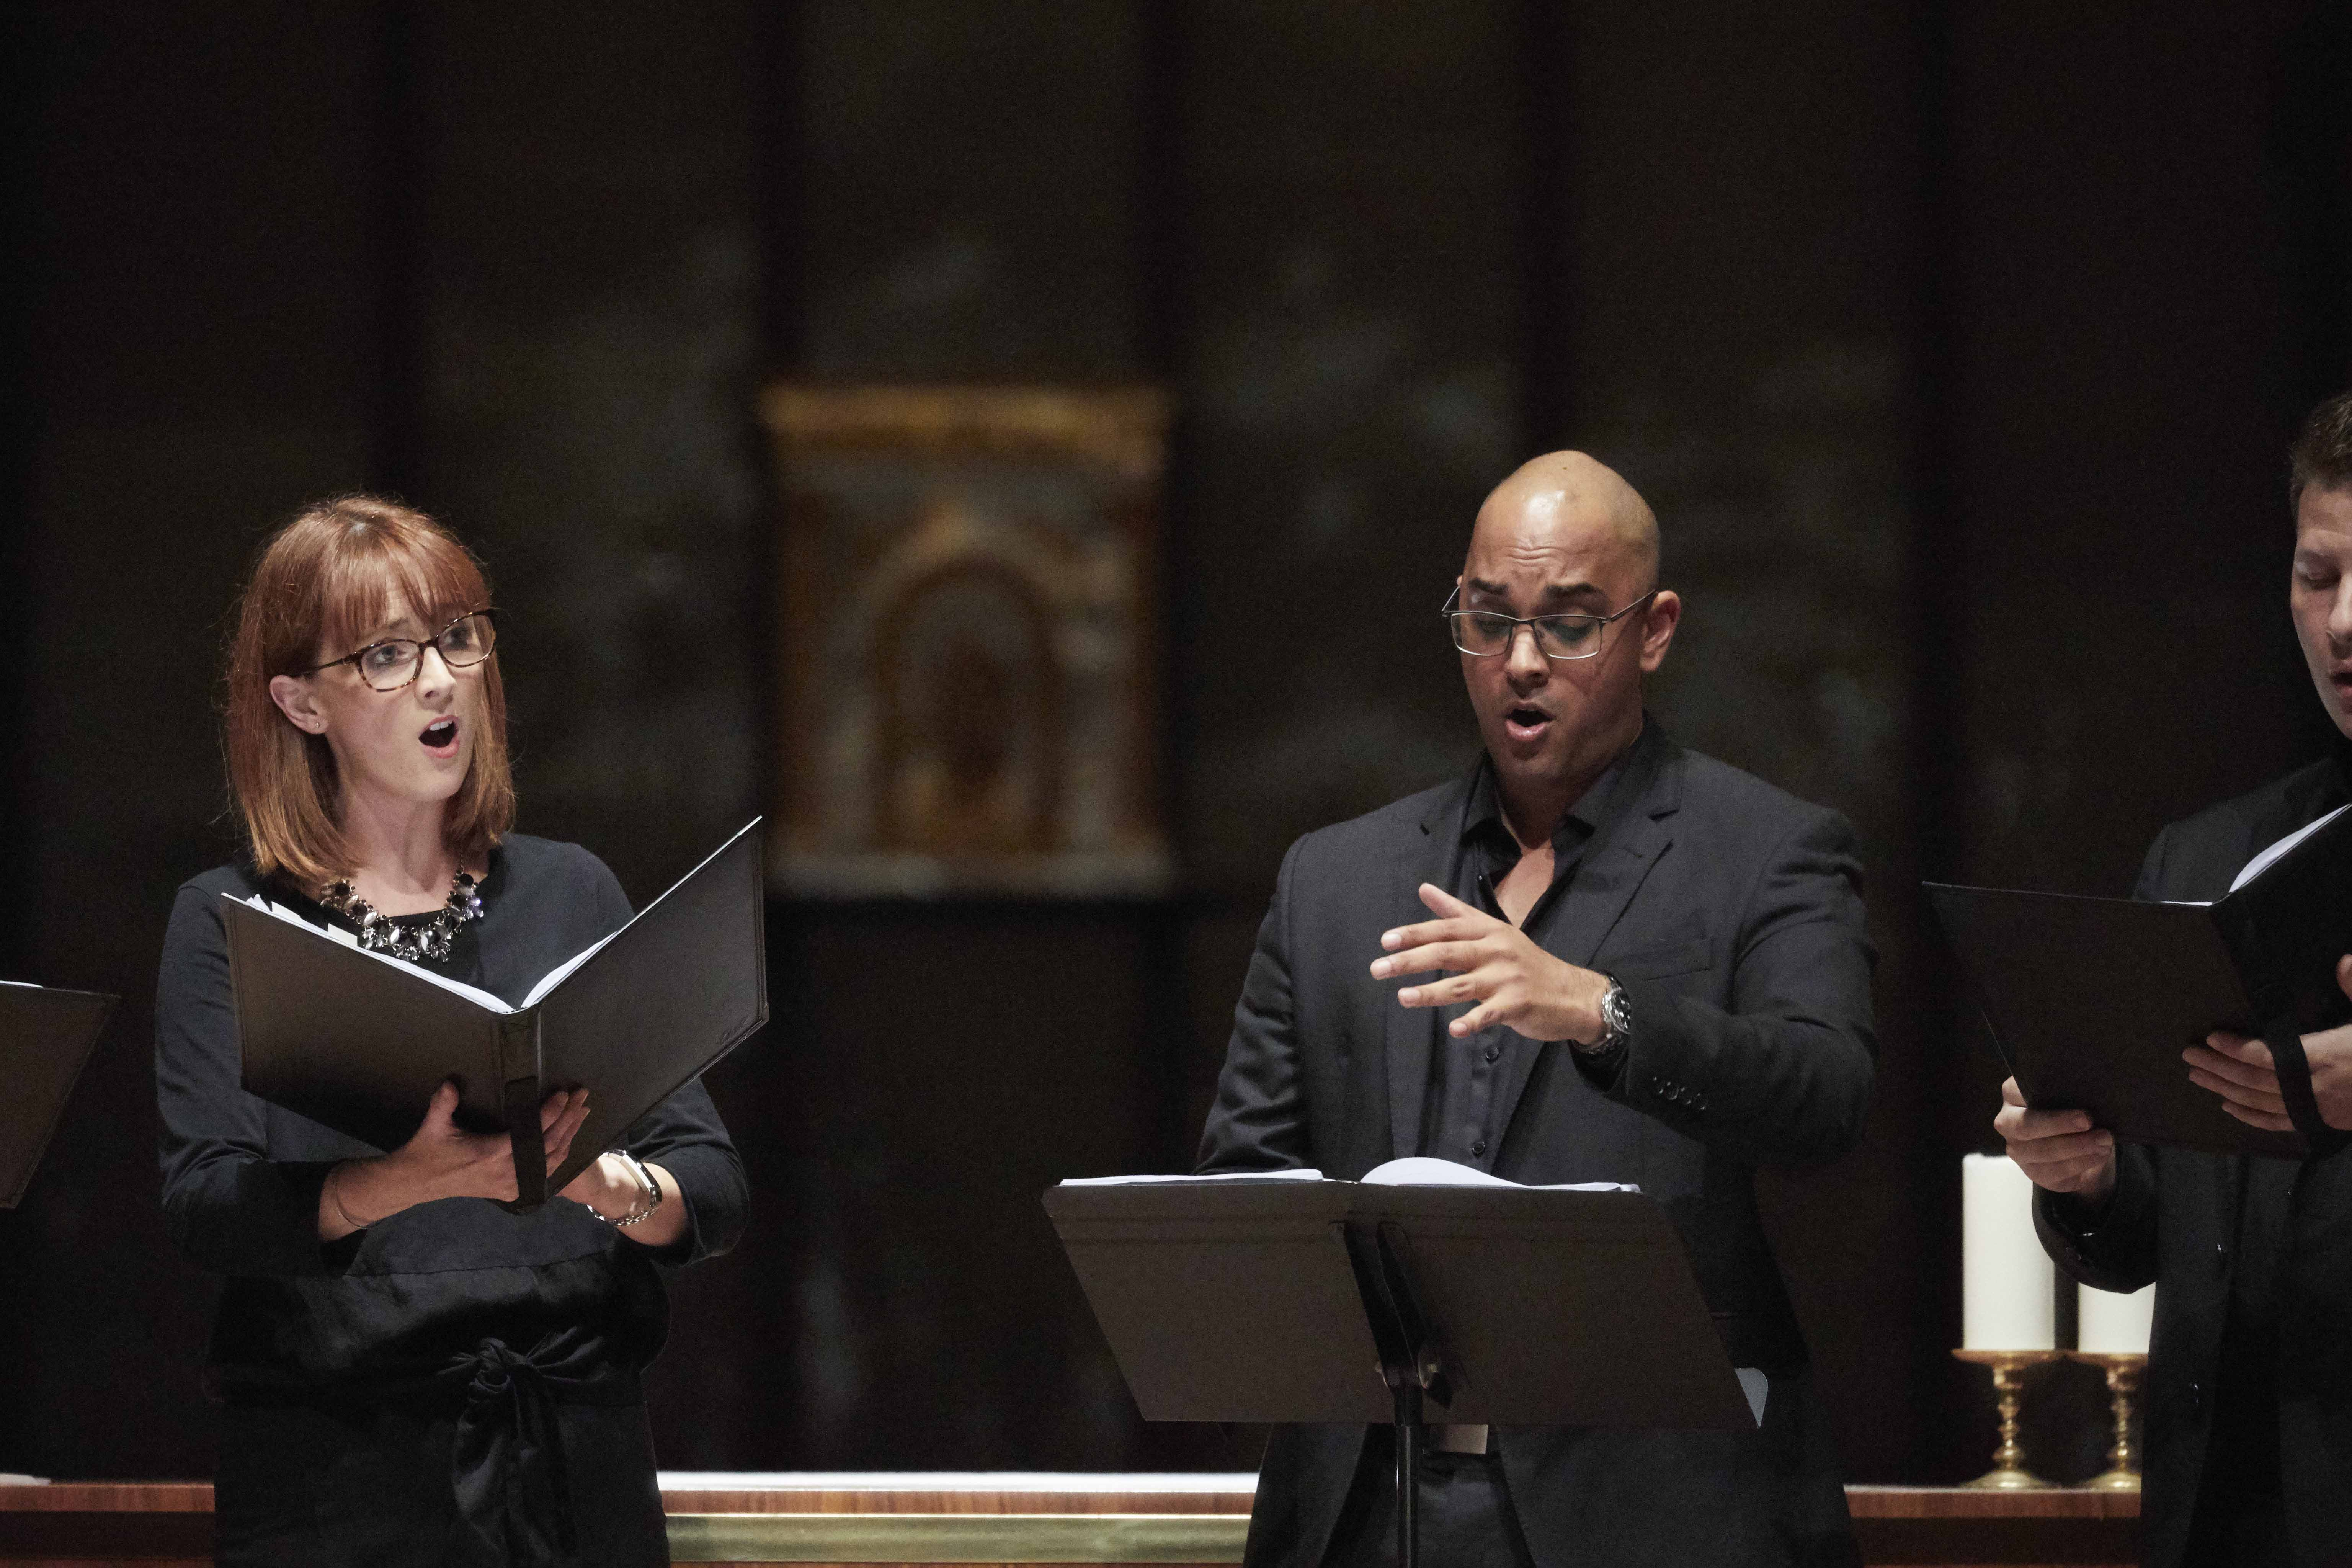 Music Director Cameron van Reyk played the role of conductor and bass singer at the Lumina concert held at St Mary's Cathedral on 5 May. Photo: Ron Tan.